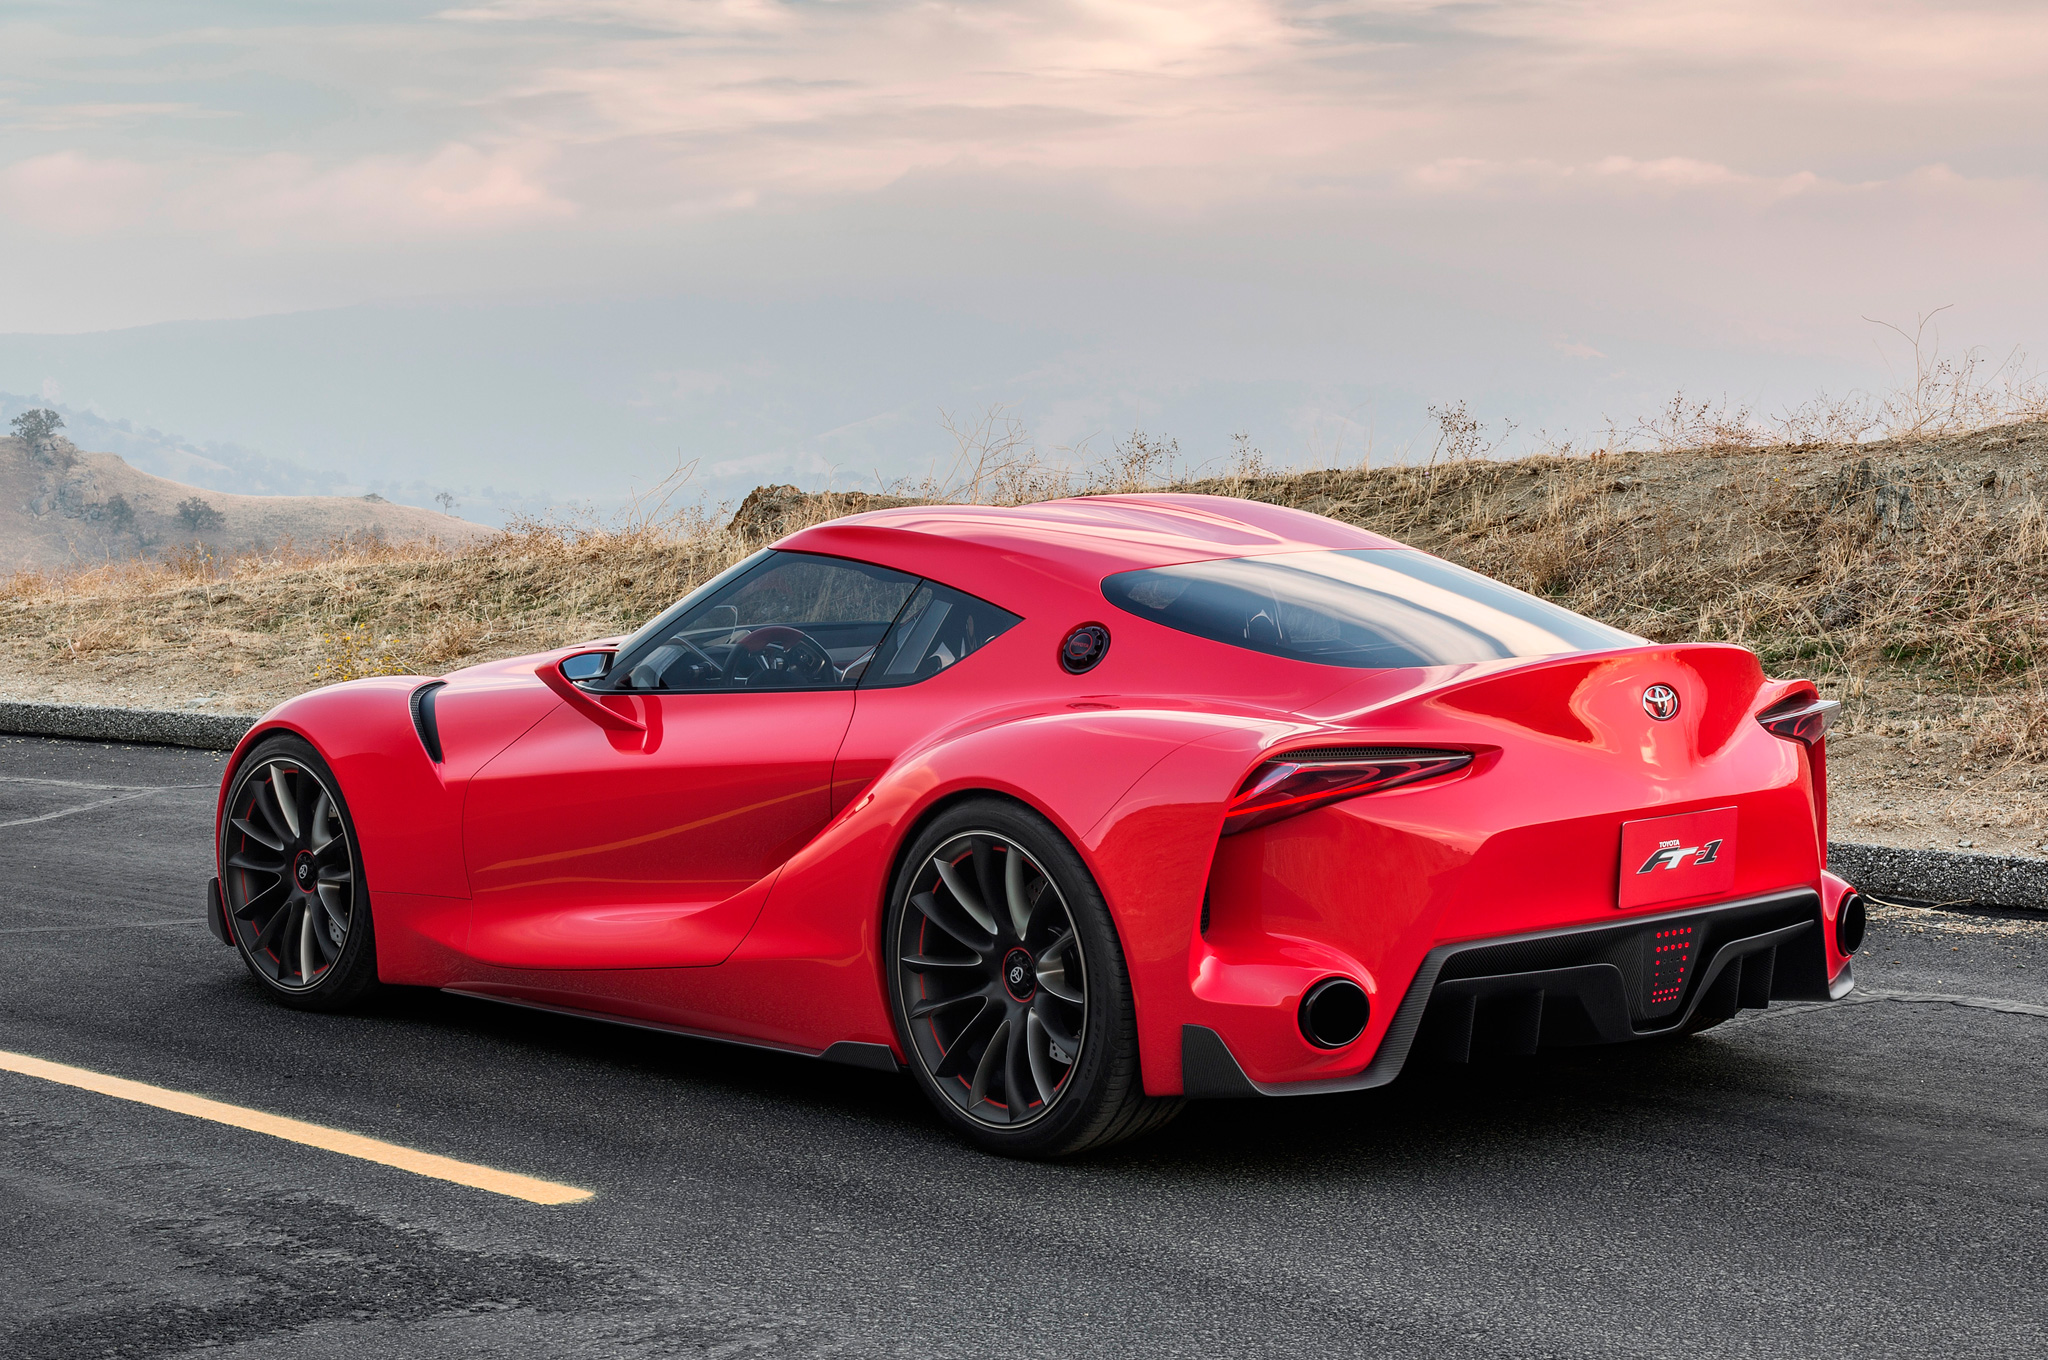 Toyota FT-1 Concept Backgrounds, Compatible - PC, Mobile, Gadgets| 2048x1360 px